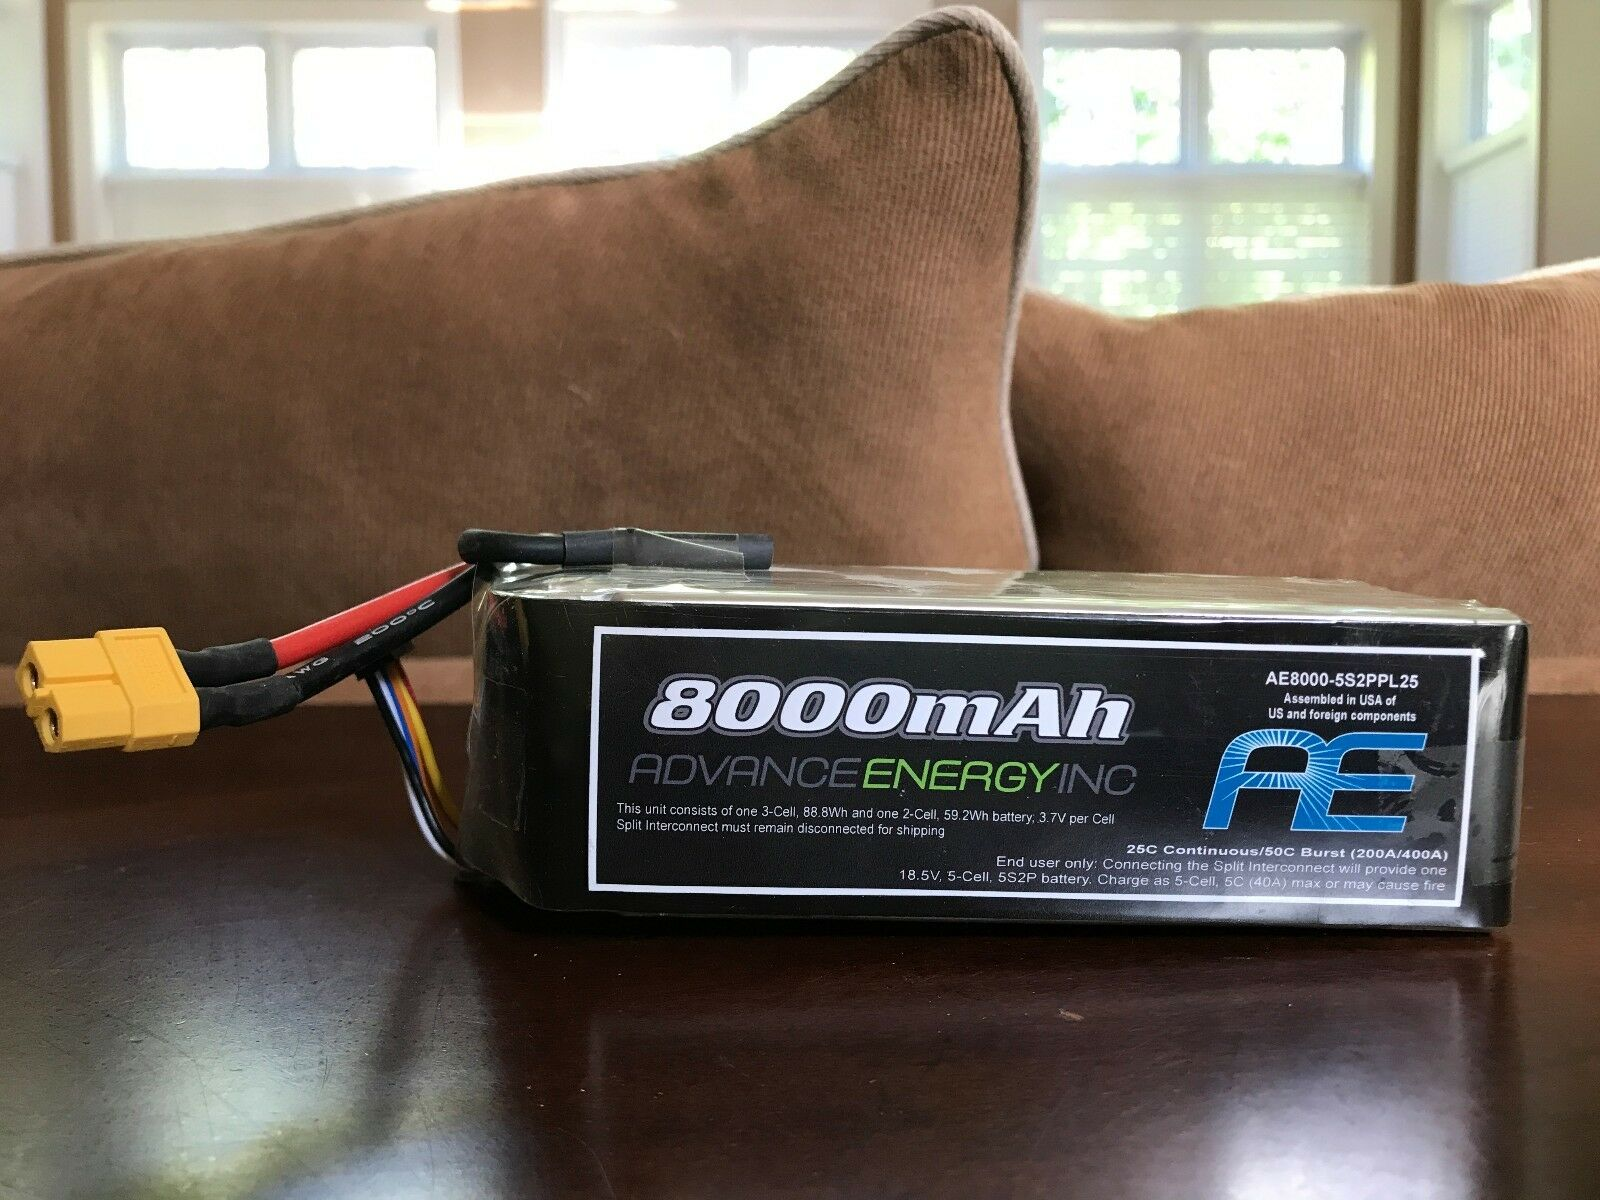 8000mah advanced energy inc (aka donner tiger 25c 5er 18.5v lipo akkus